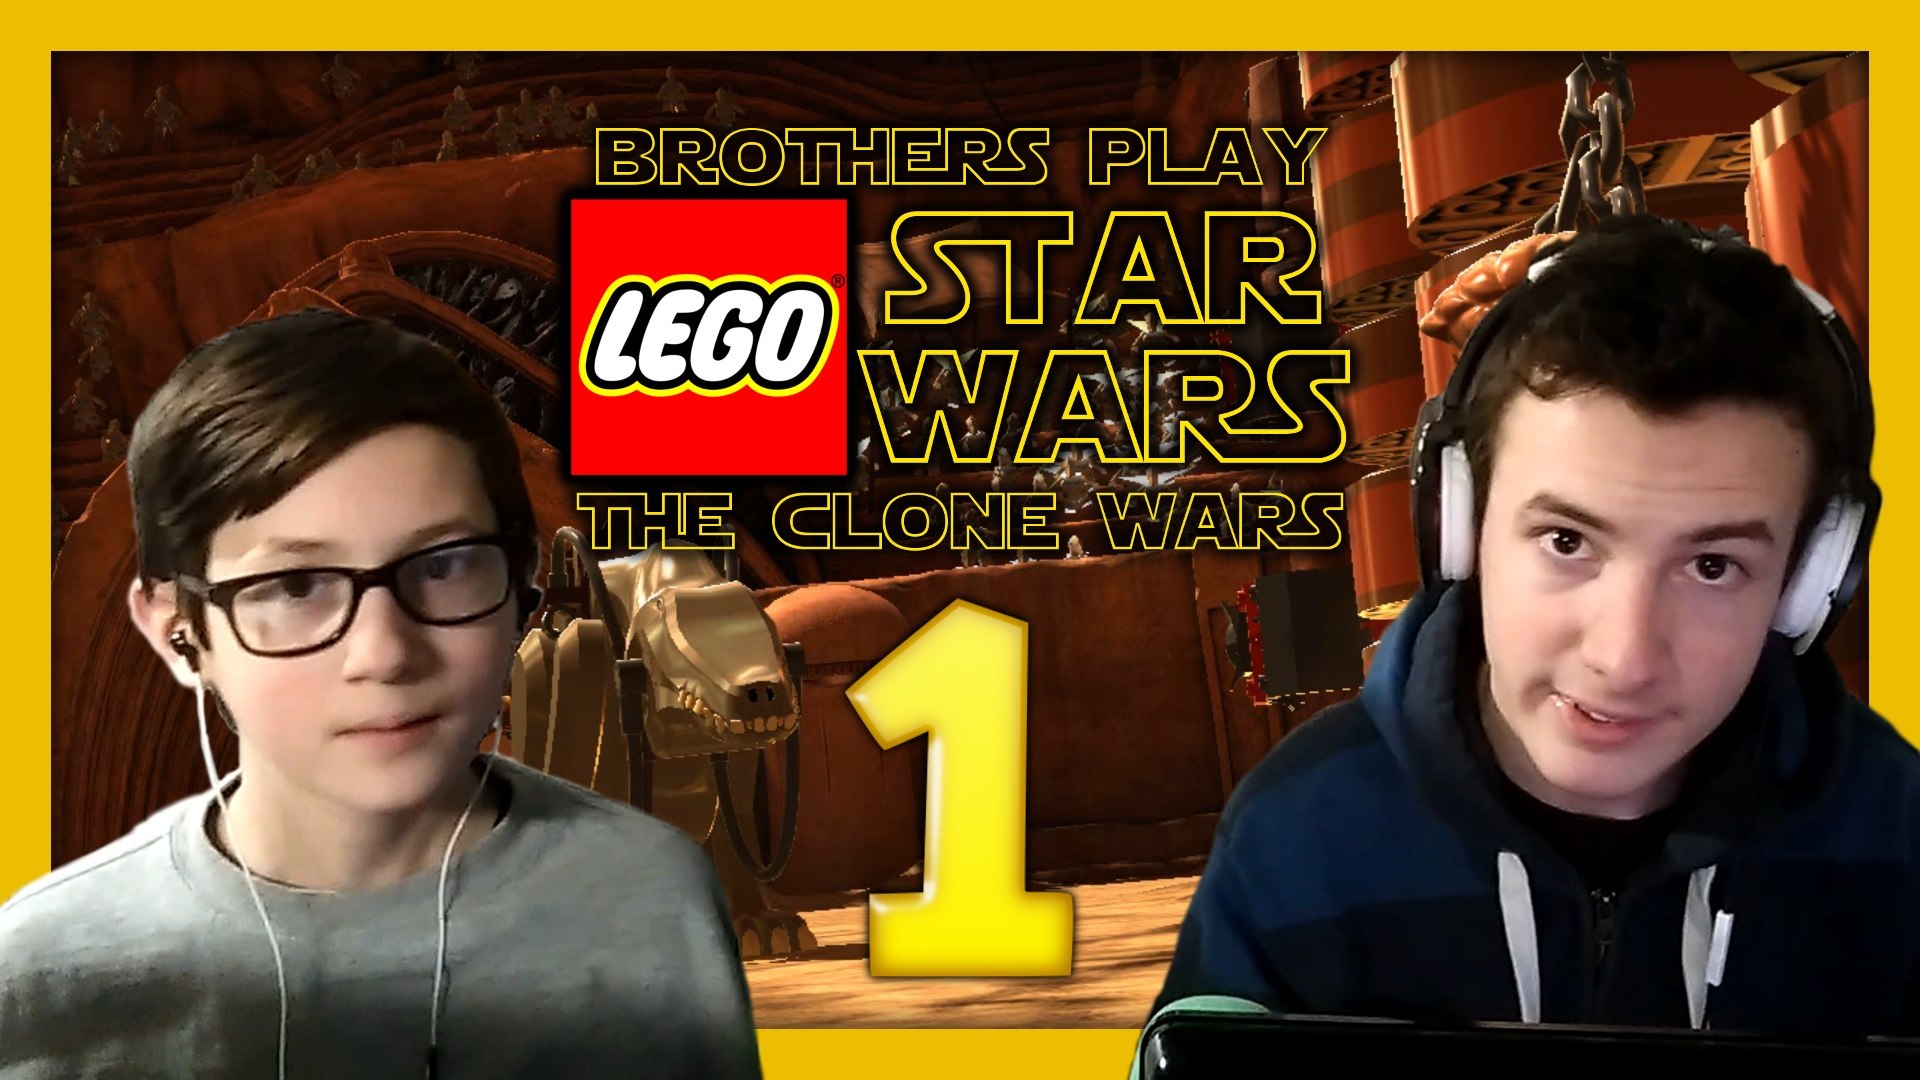 'Geonosian Arena' Brothers Play LEGO Star Wars III: The Clone Wars Episode 1